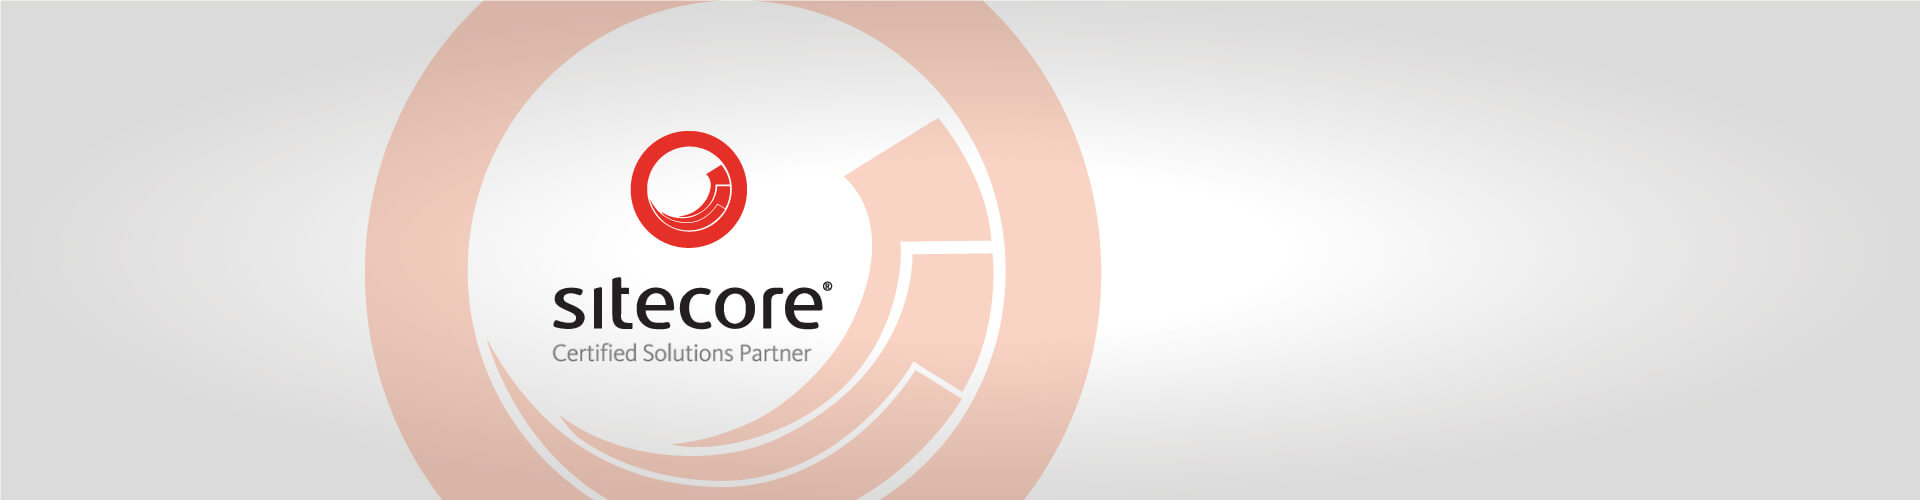 Sitecore Enterprise Solutions